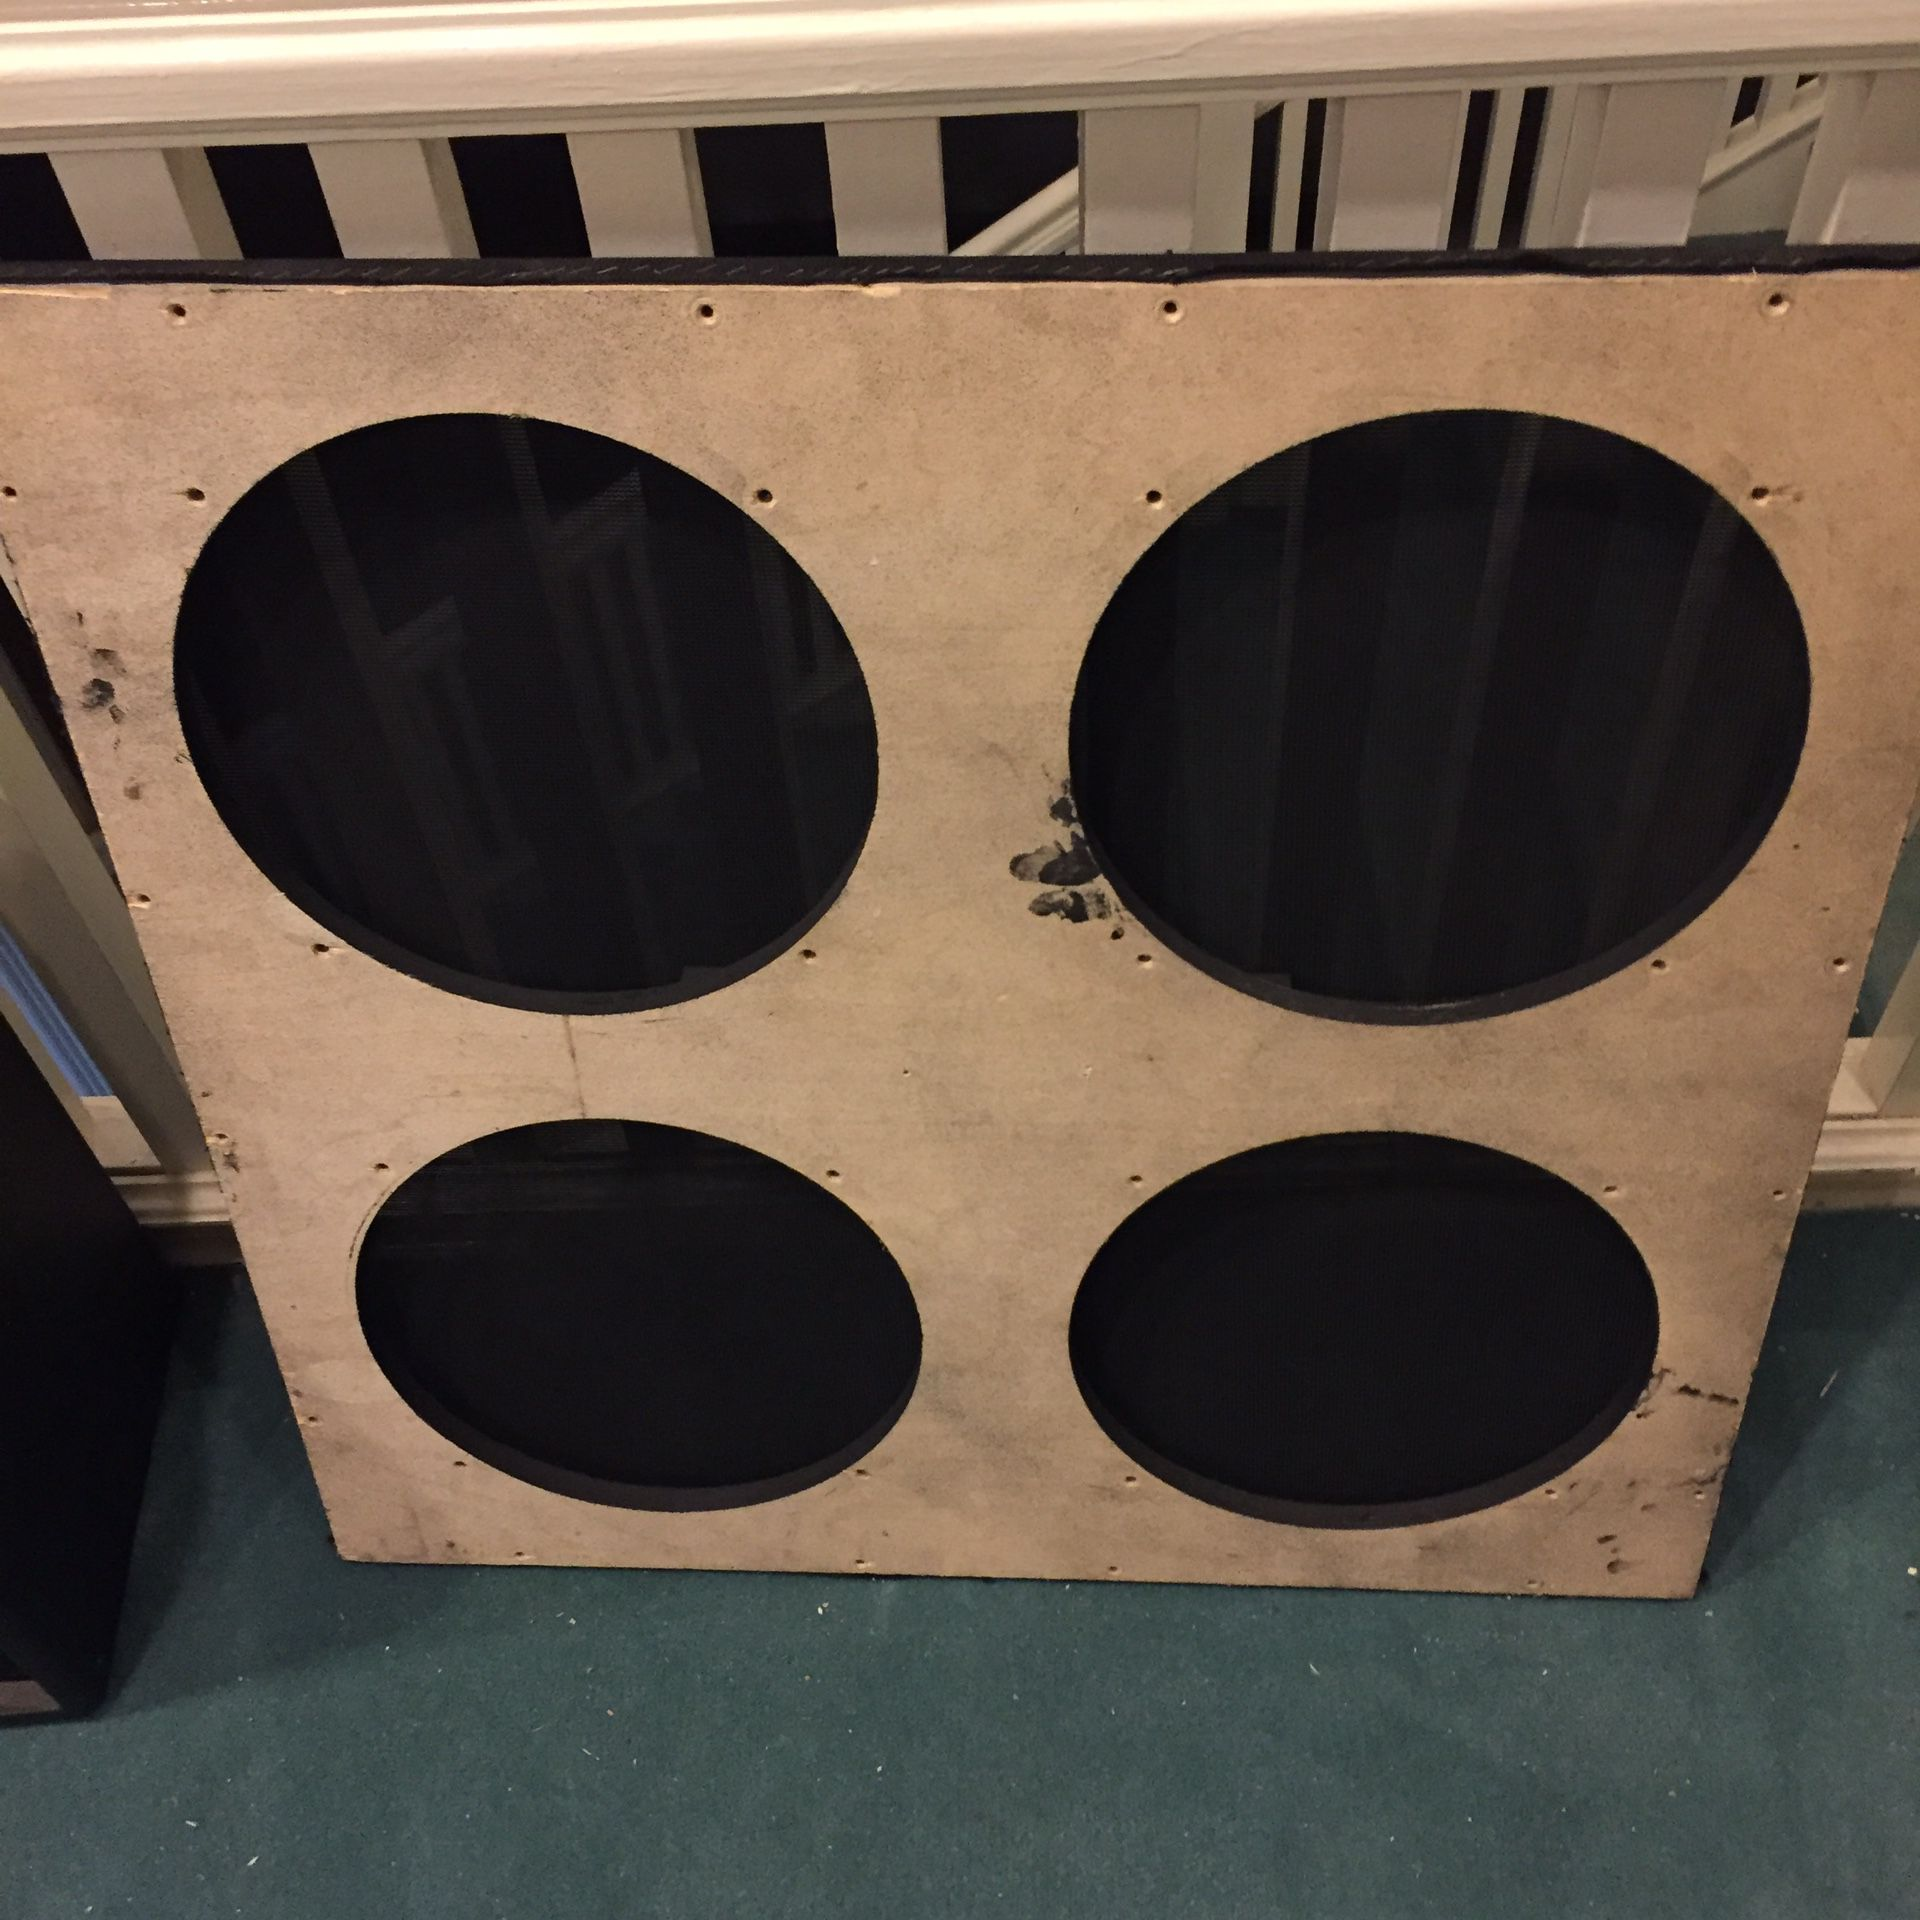 Peavey 6505 series 412 cab baffle / grille. New